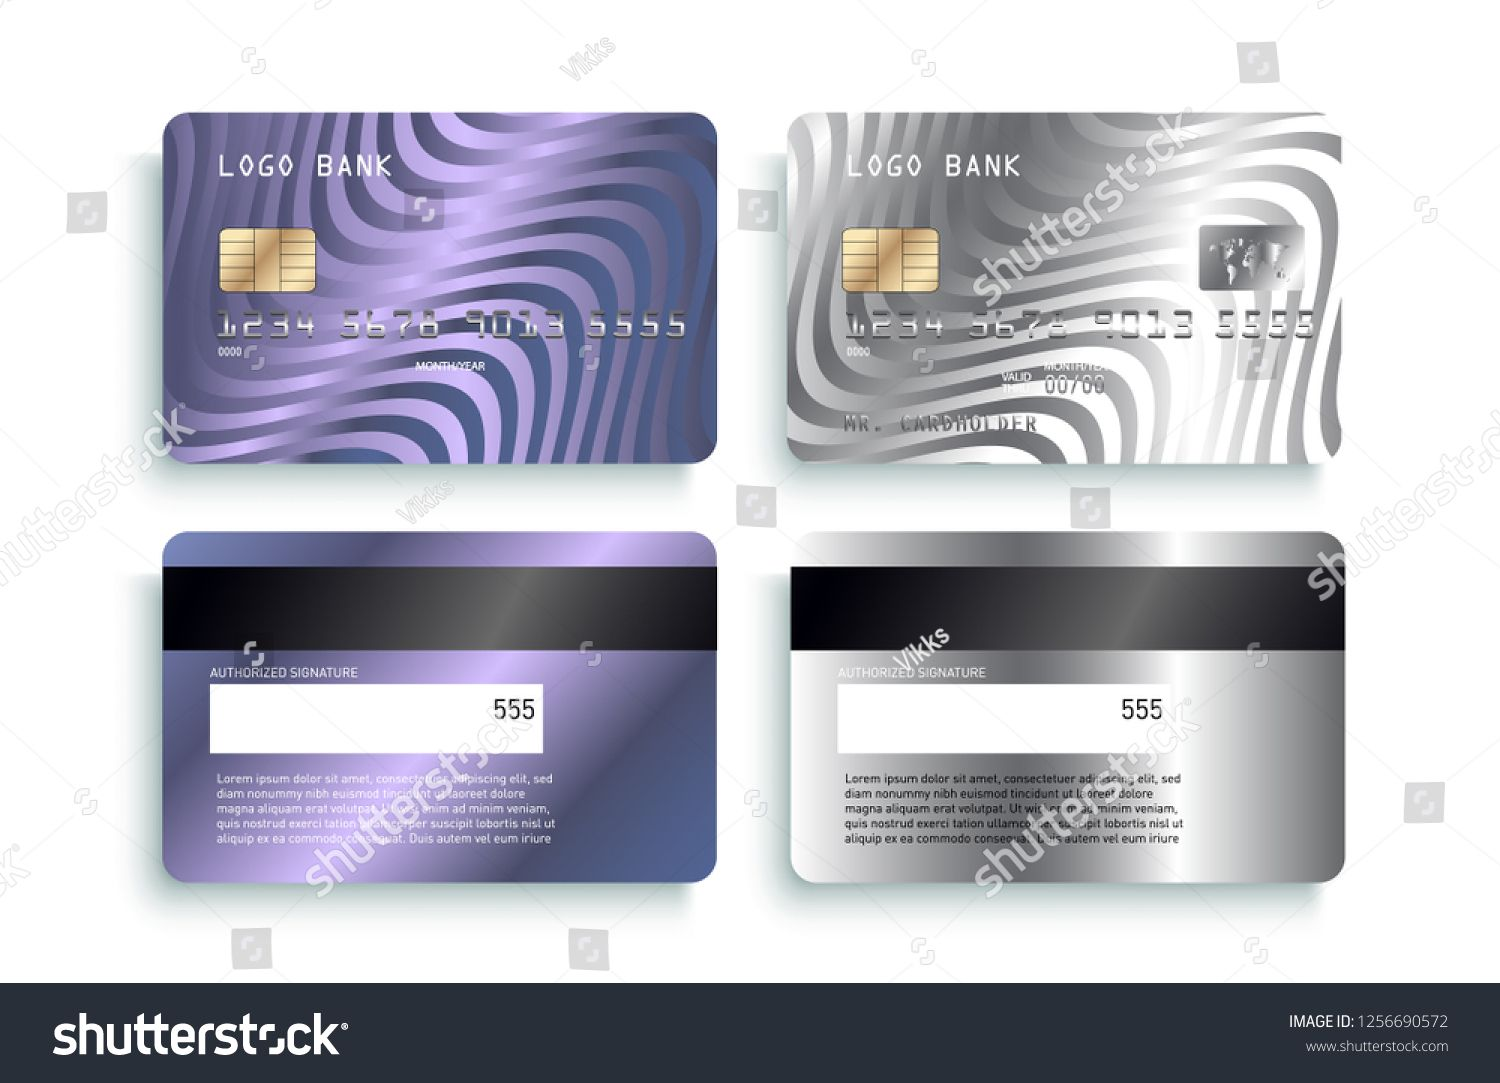 Luxury Credit Card Template Design Realistic Detailed Silver Credit Cards Mockup Vector Illustration Template Design Real Card Template Template Design Cards